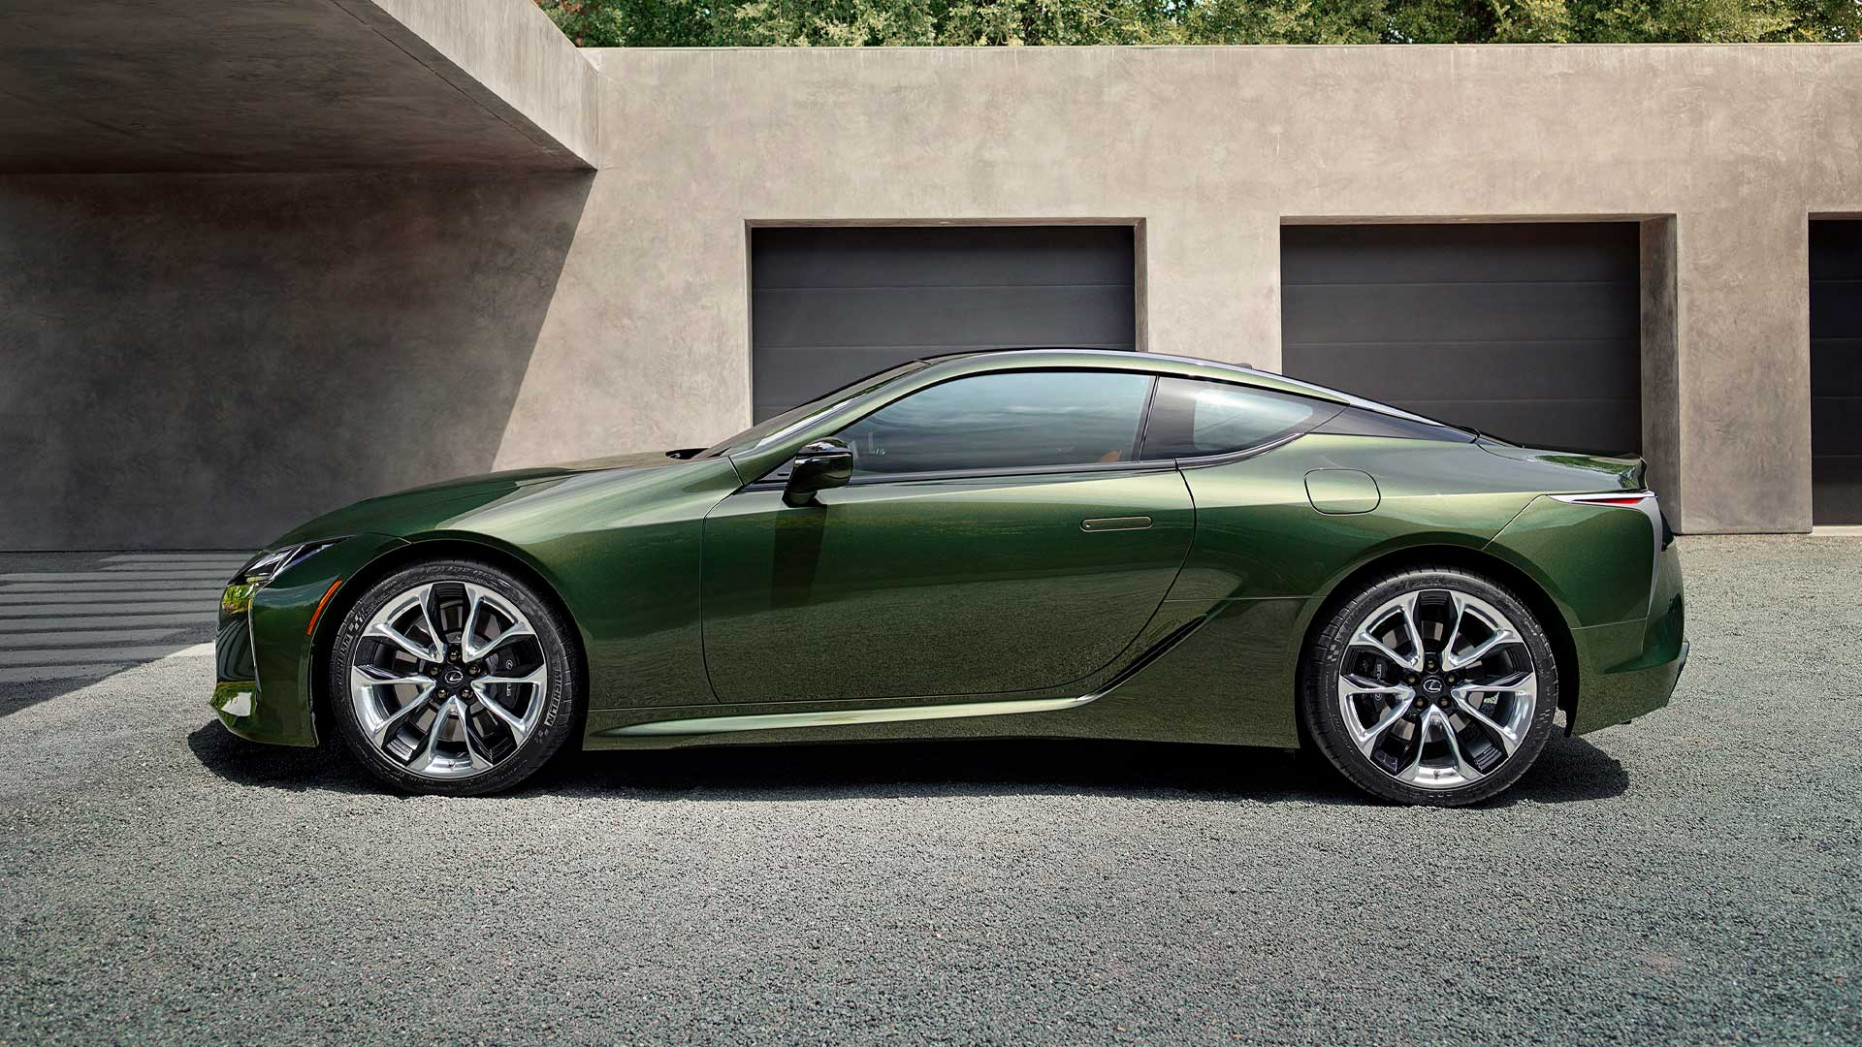 Die limitierte Lexus LC Club Edition | News & Events | Lexus DE